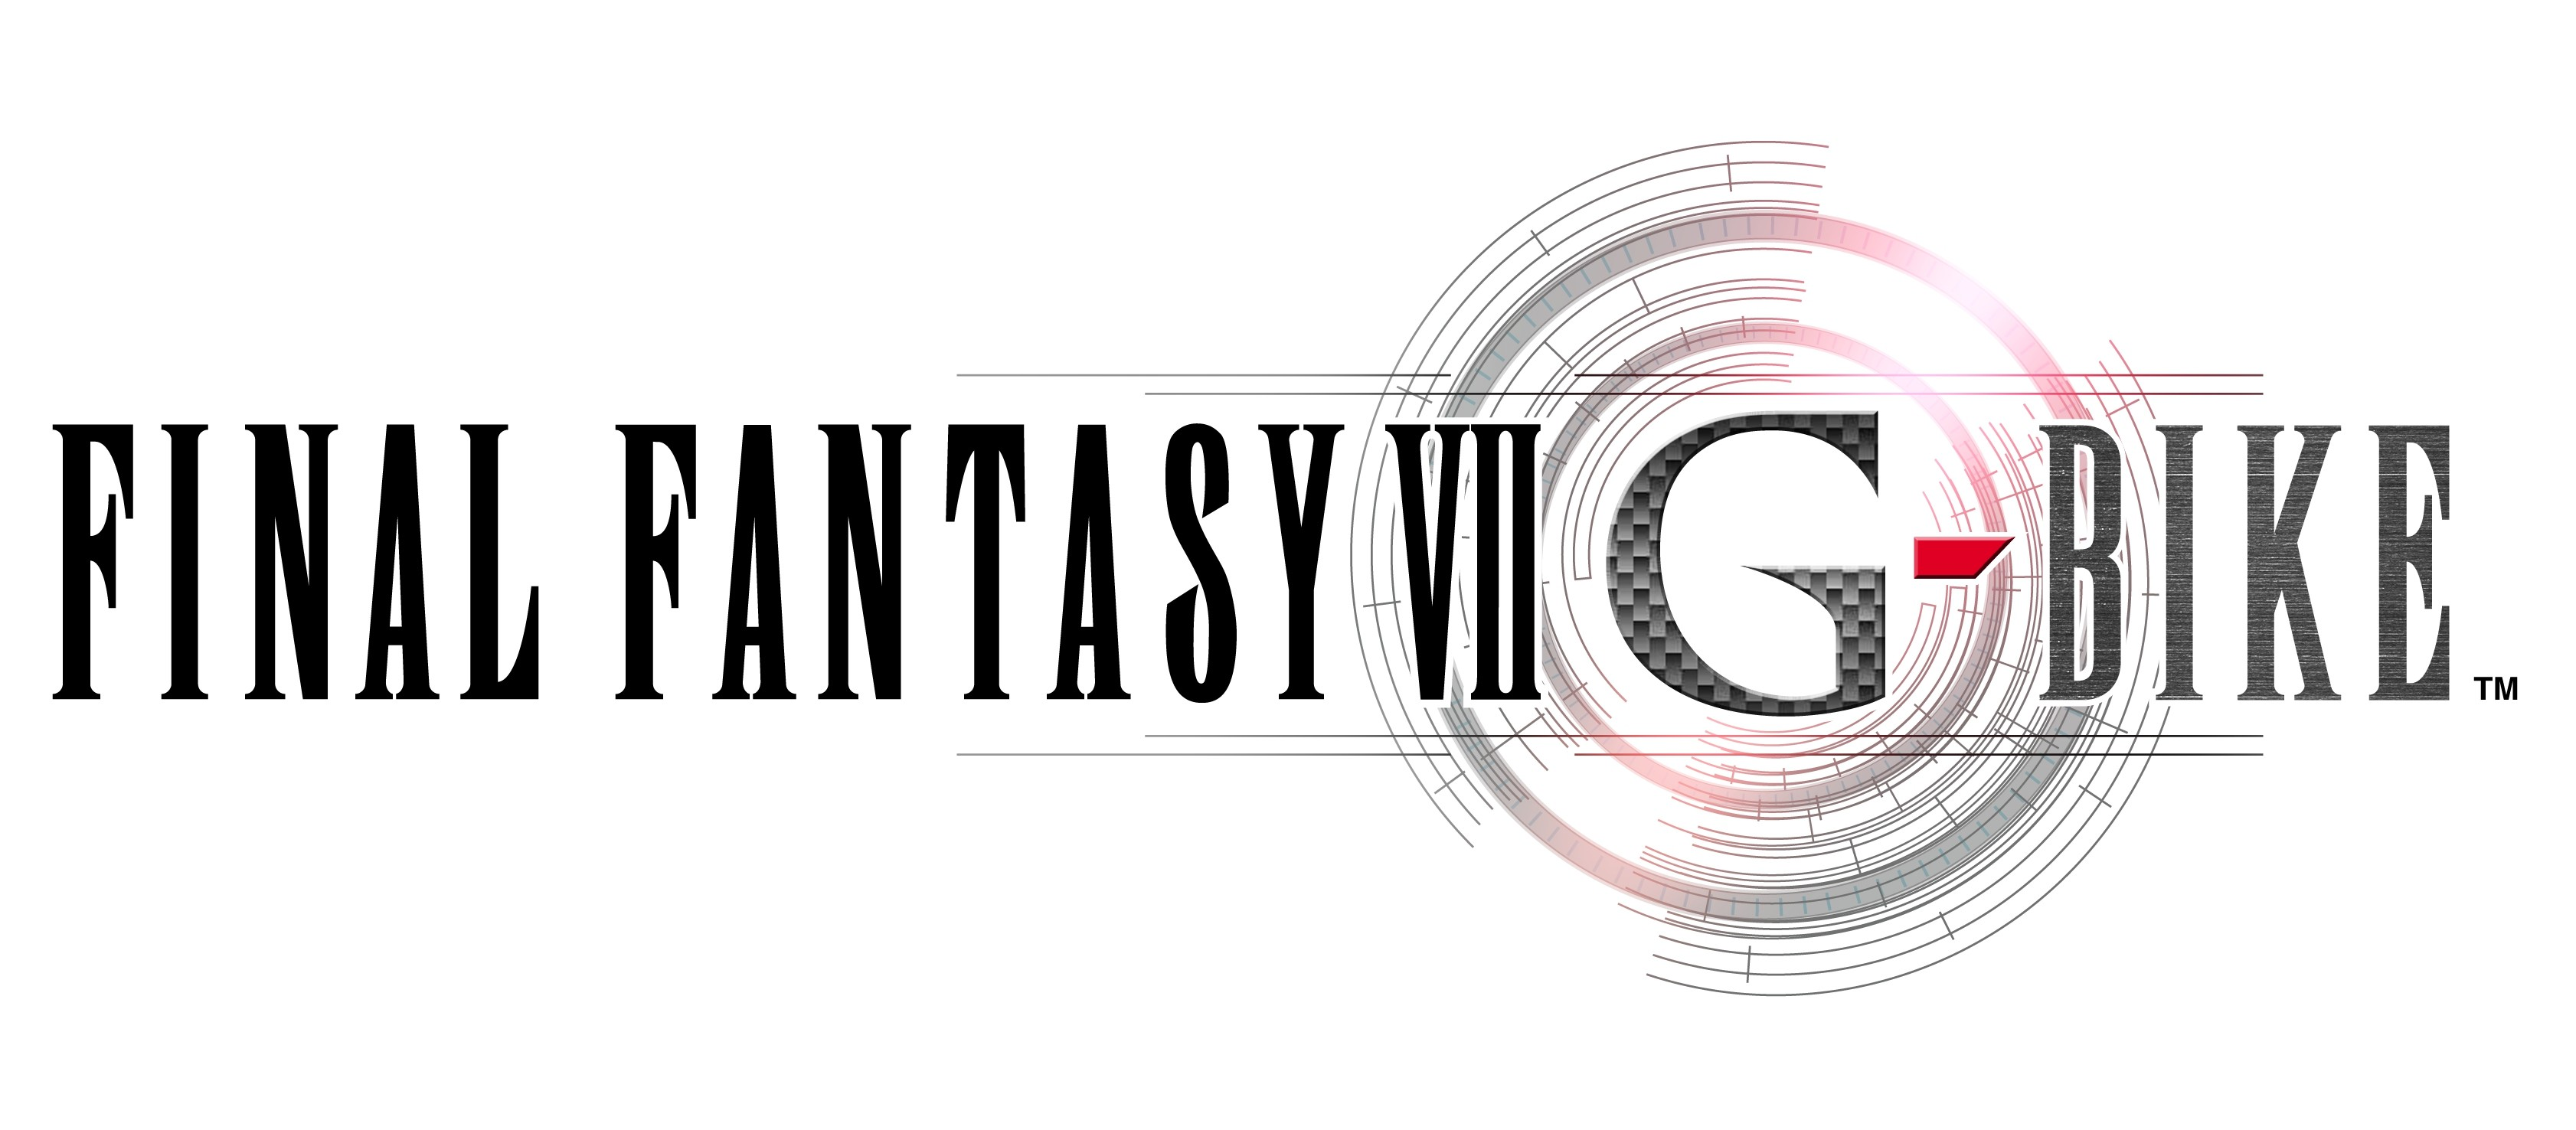 Final Fantasy Vii Minigame G Bike Coming To Mobile